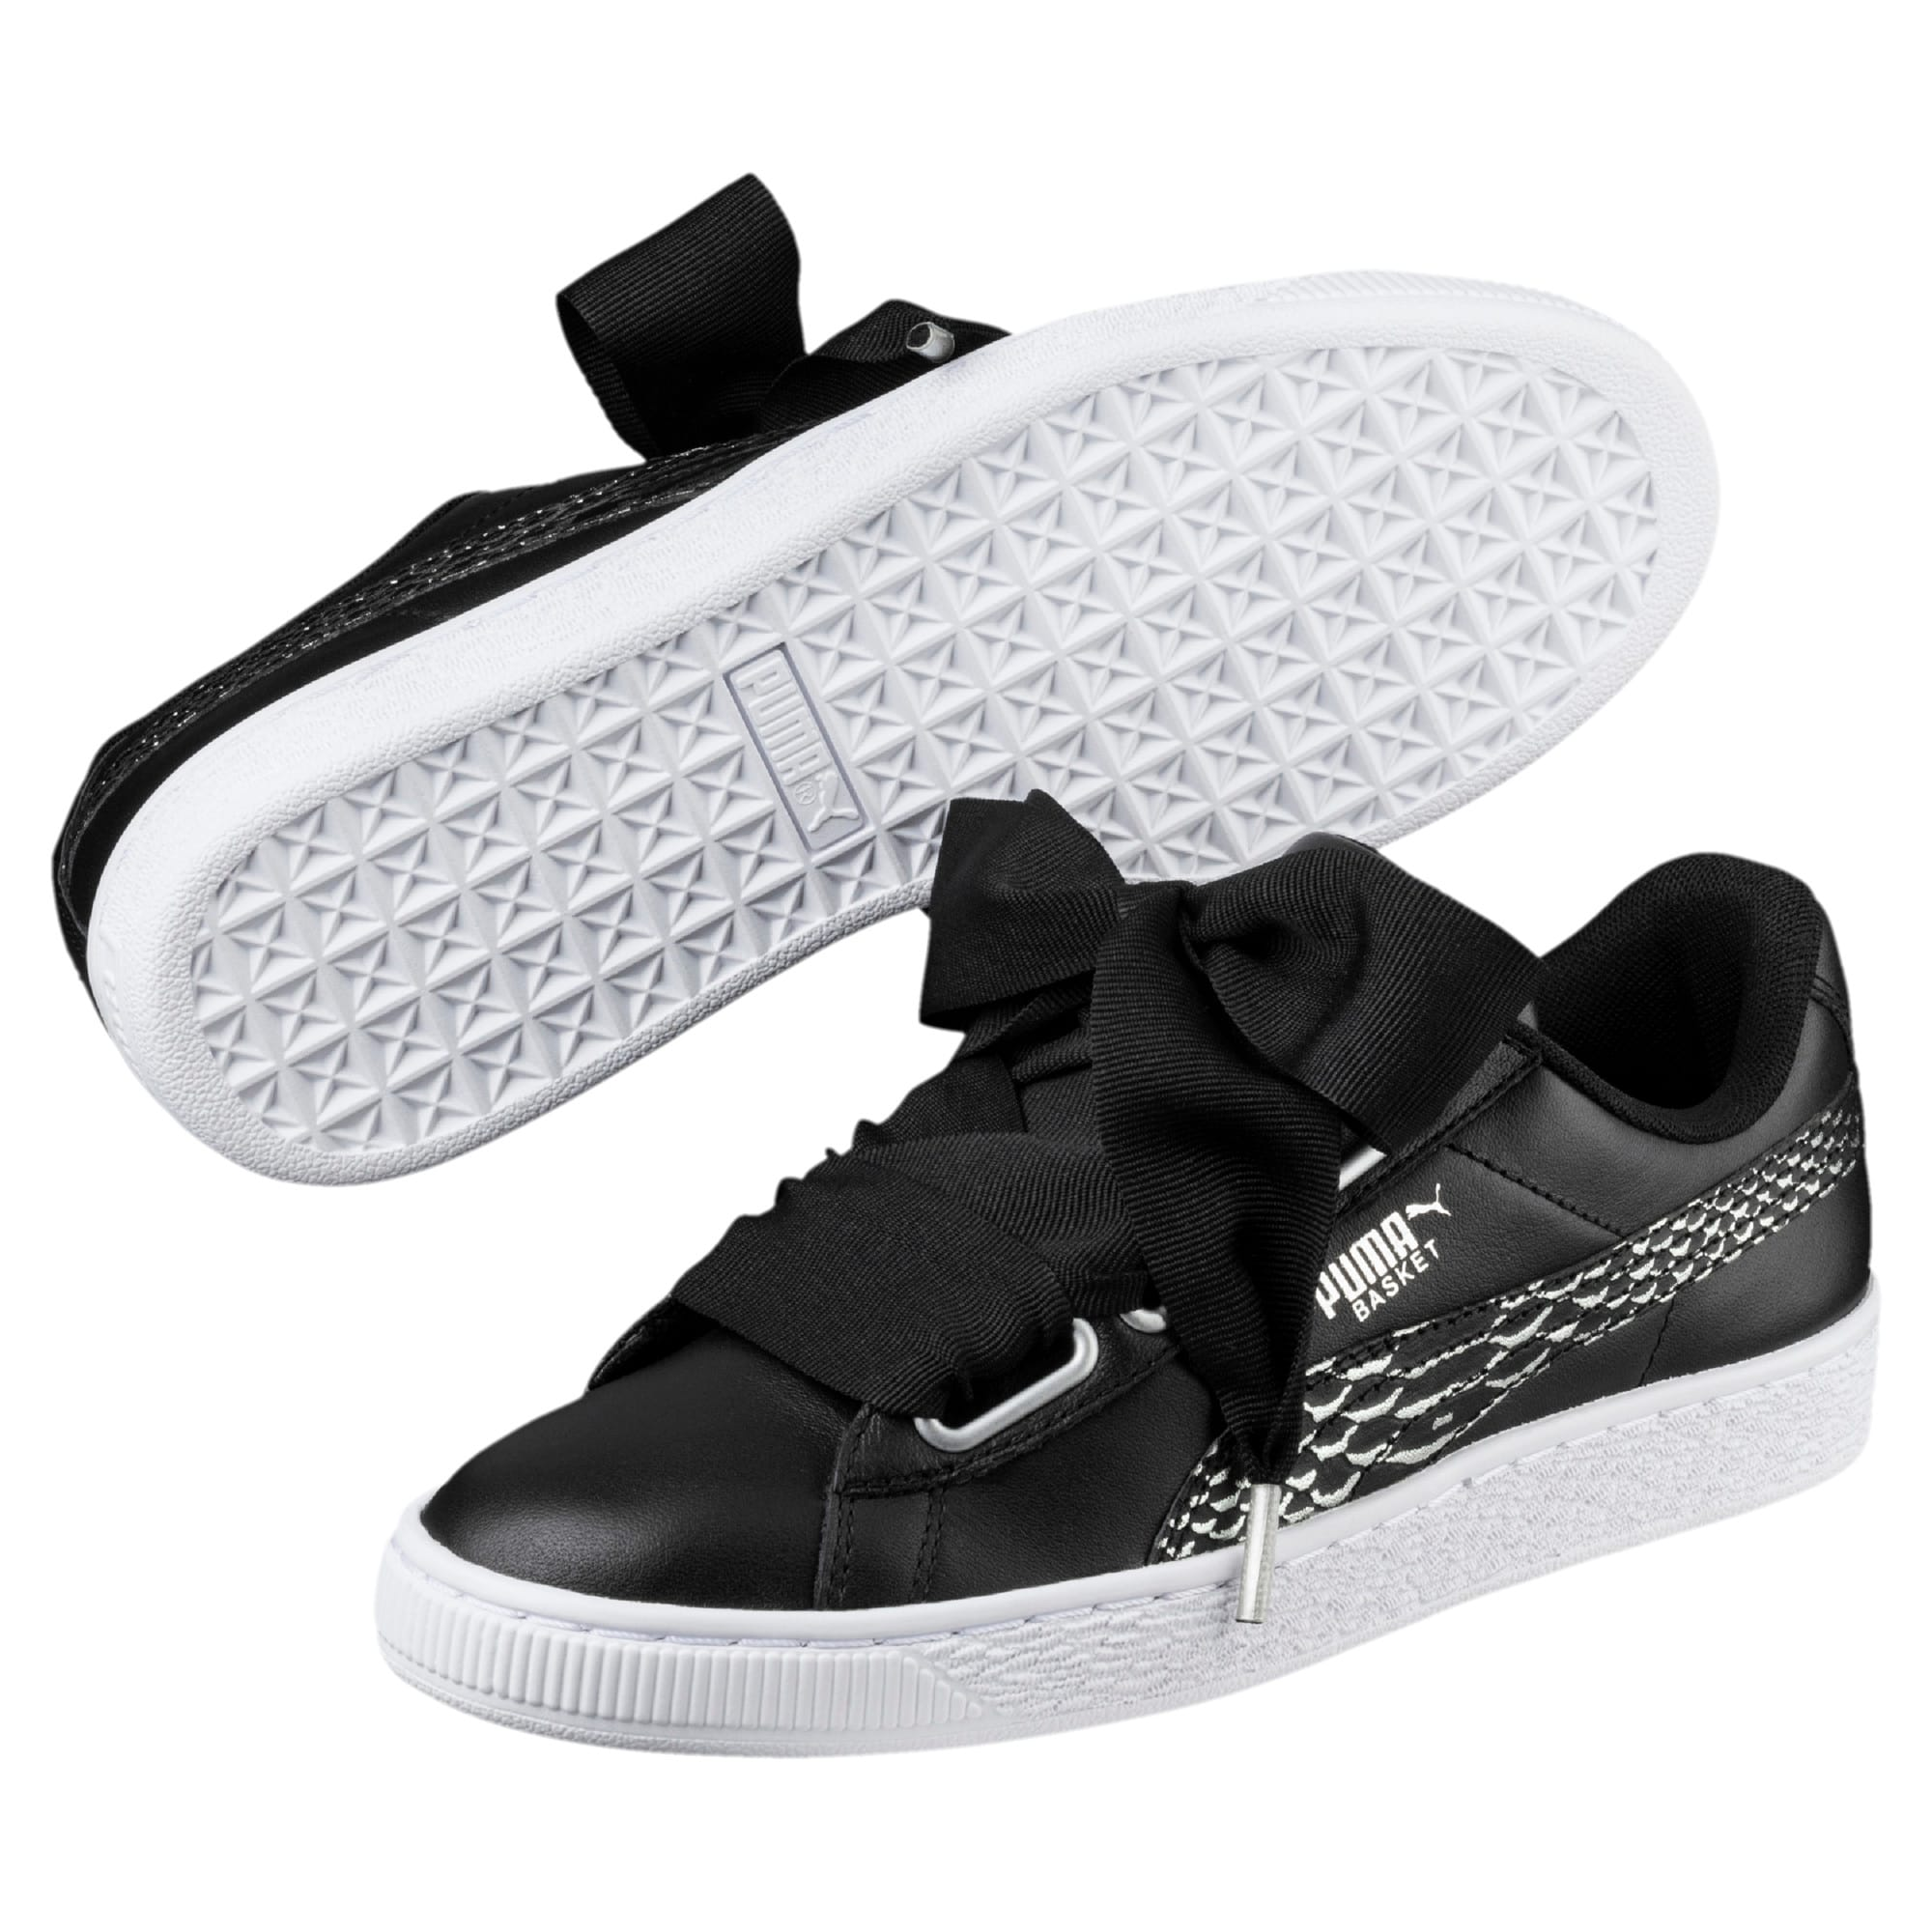 Thumbnail 2 of Basket Heart Oceanaire Women's Trainers, Puma Black-Puma White, medium-IND